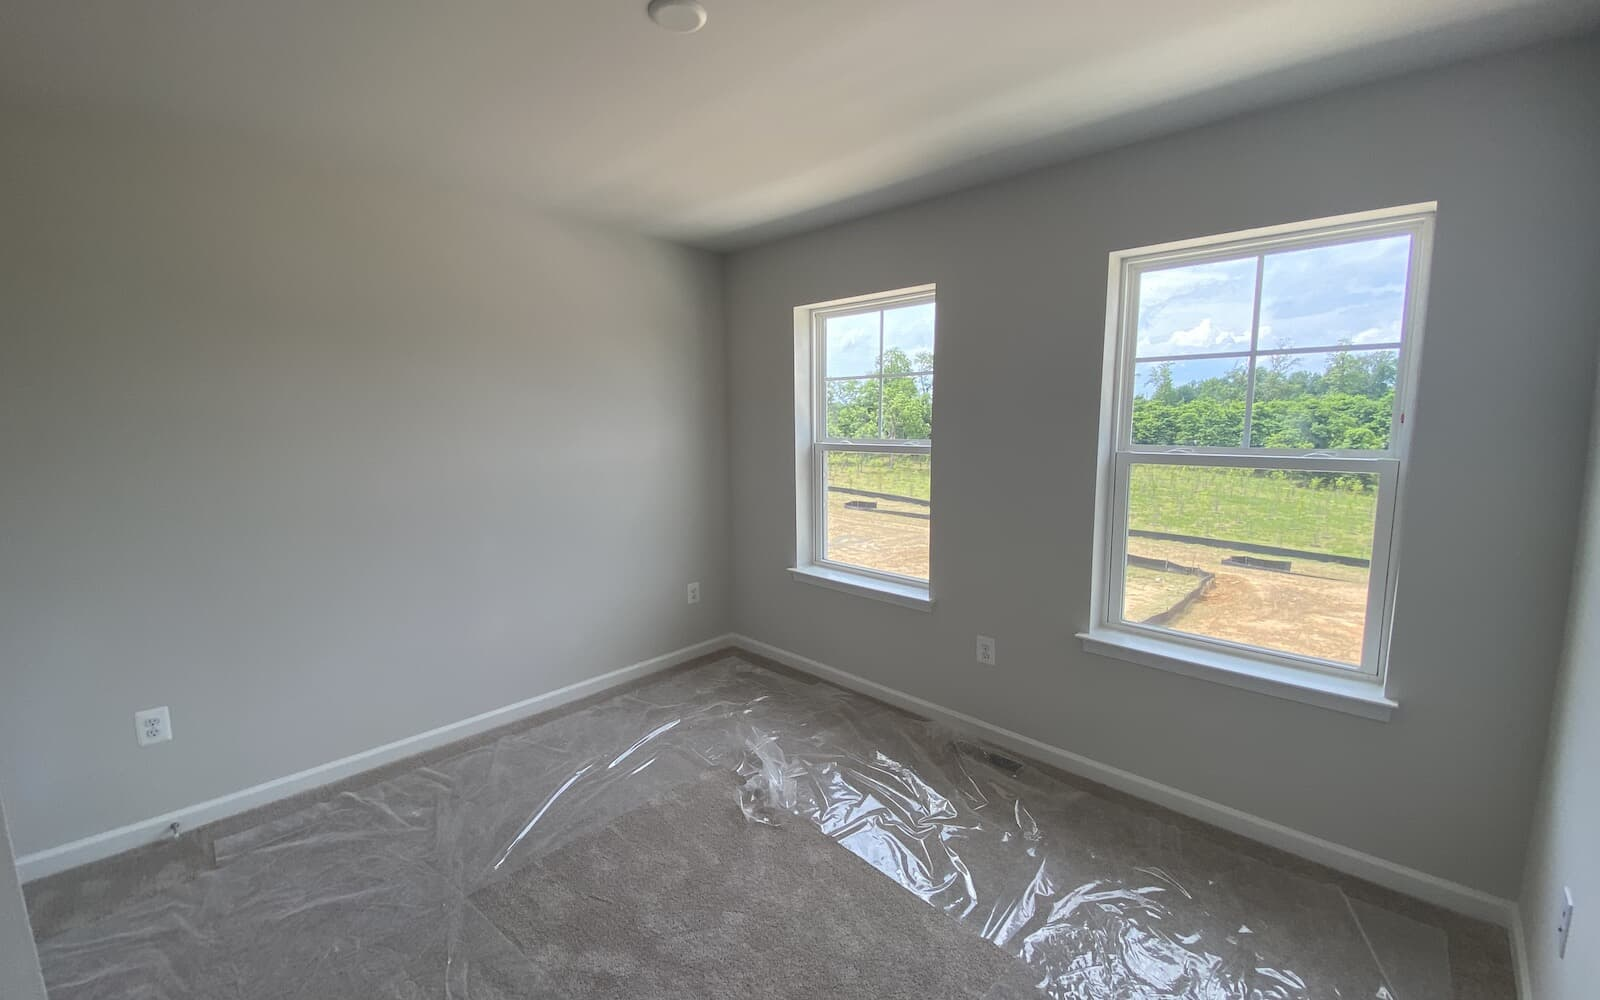 secondary-bedroom-orion-homesite5009-bradfords-brookfield-residential